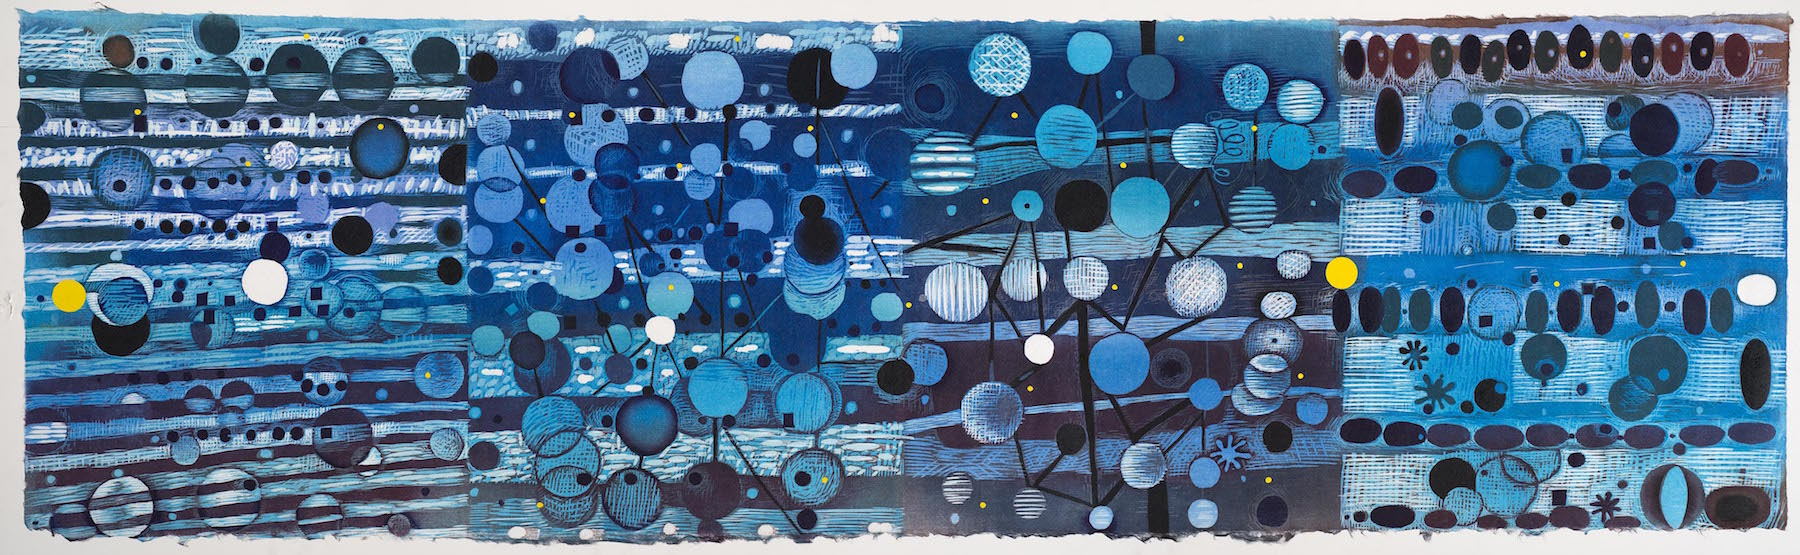 "Karen Kunc  (BIO)    Oscillation Shift , 2015  woodcut  17"" x 56"""